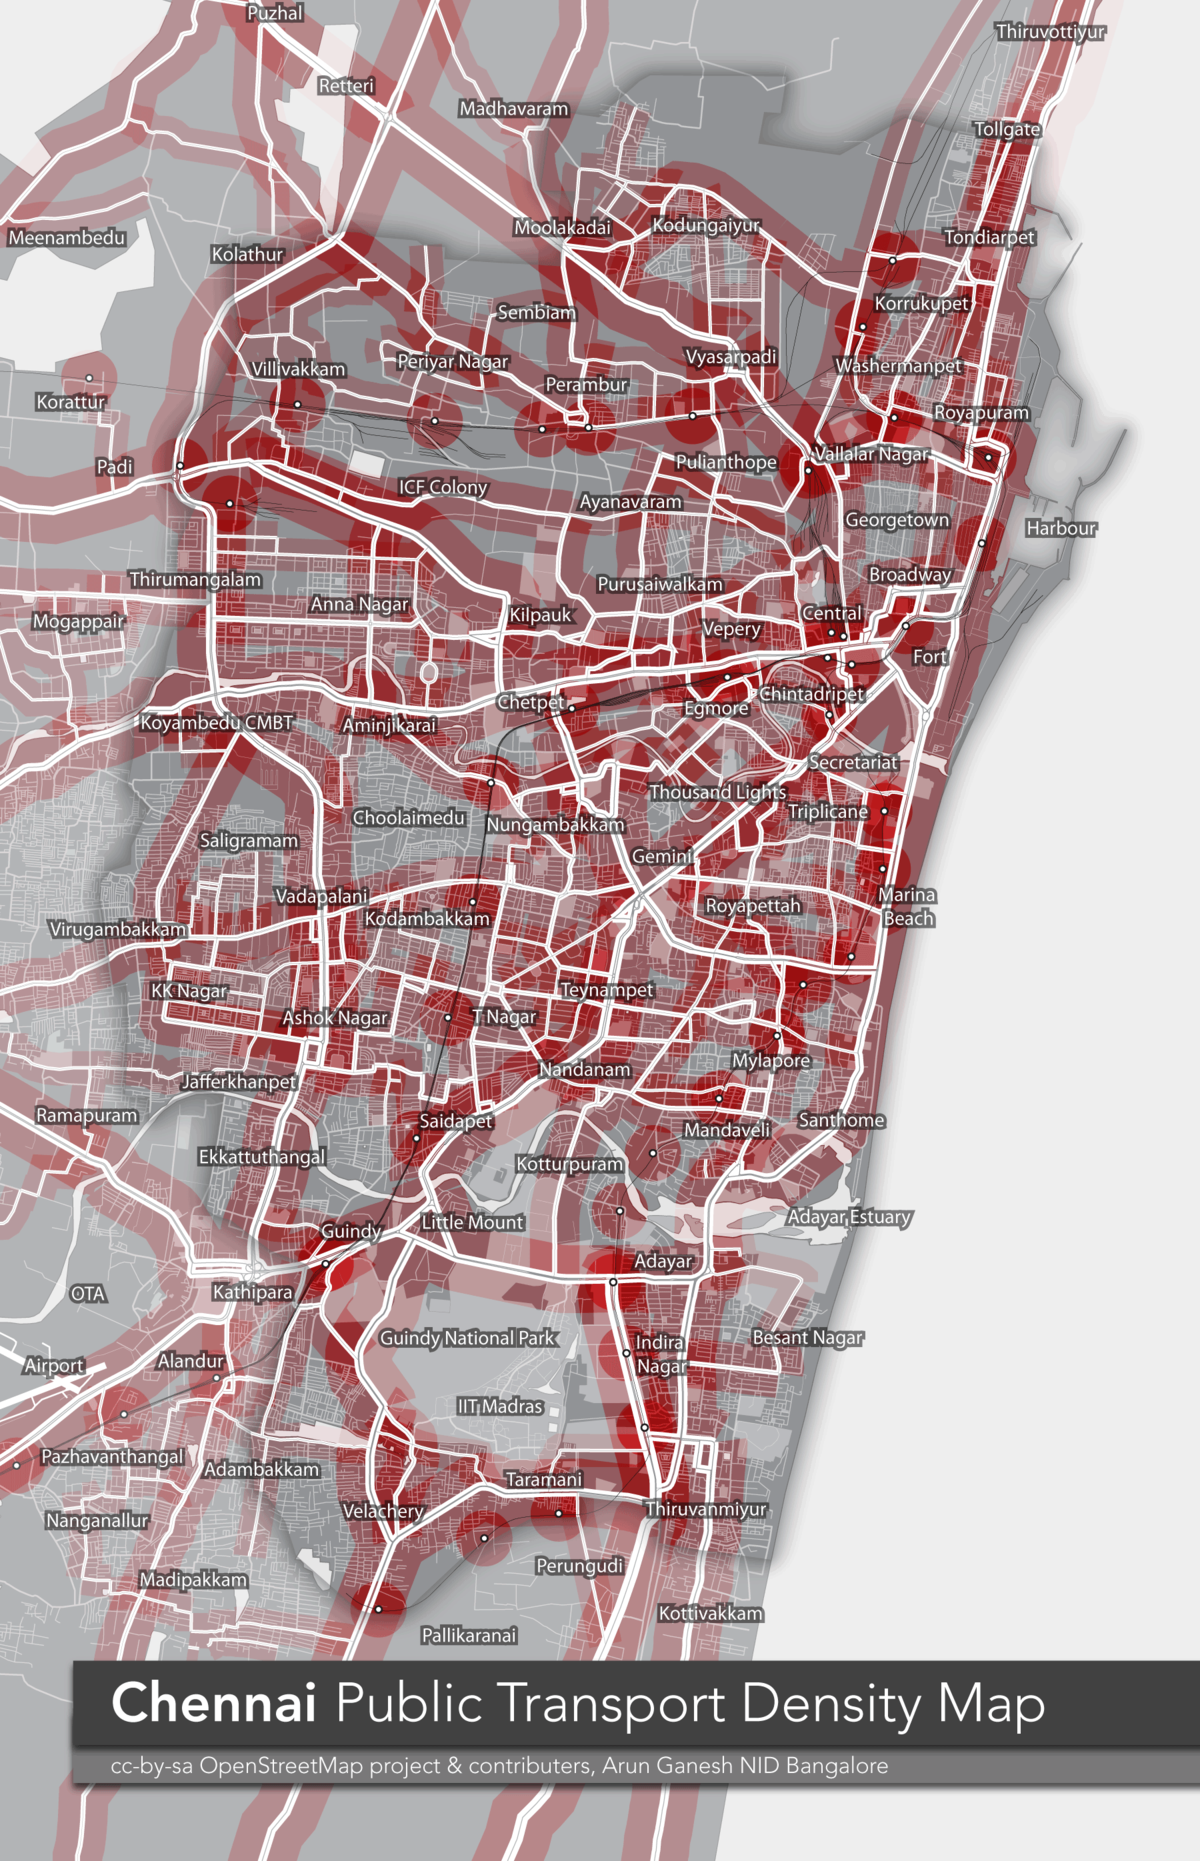 1200px-Chennai_Openstreetmap_Public_Transport_Density_Map India State City Map on india territories, southwest asia map states, india geography, ecuador map states, india states list, china map states, india population density, indonesia map states, australia map states, colombia map states, india punjab british, continental united states map states, nigeria map states, pakistan map states, bangladesh map states, india states and cities, national map with states, sudan map states, india and its states, the united states map states,